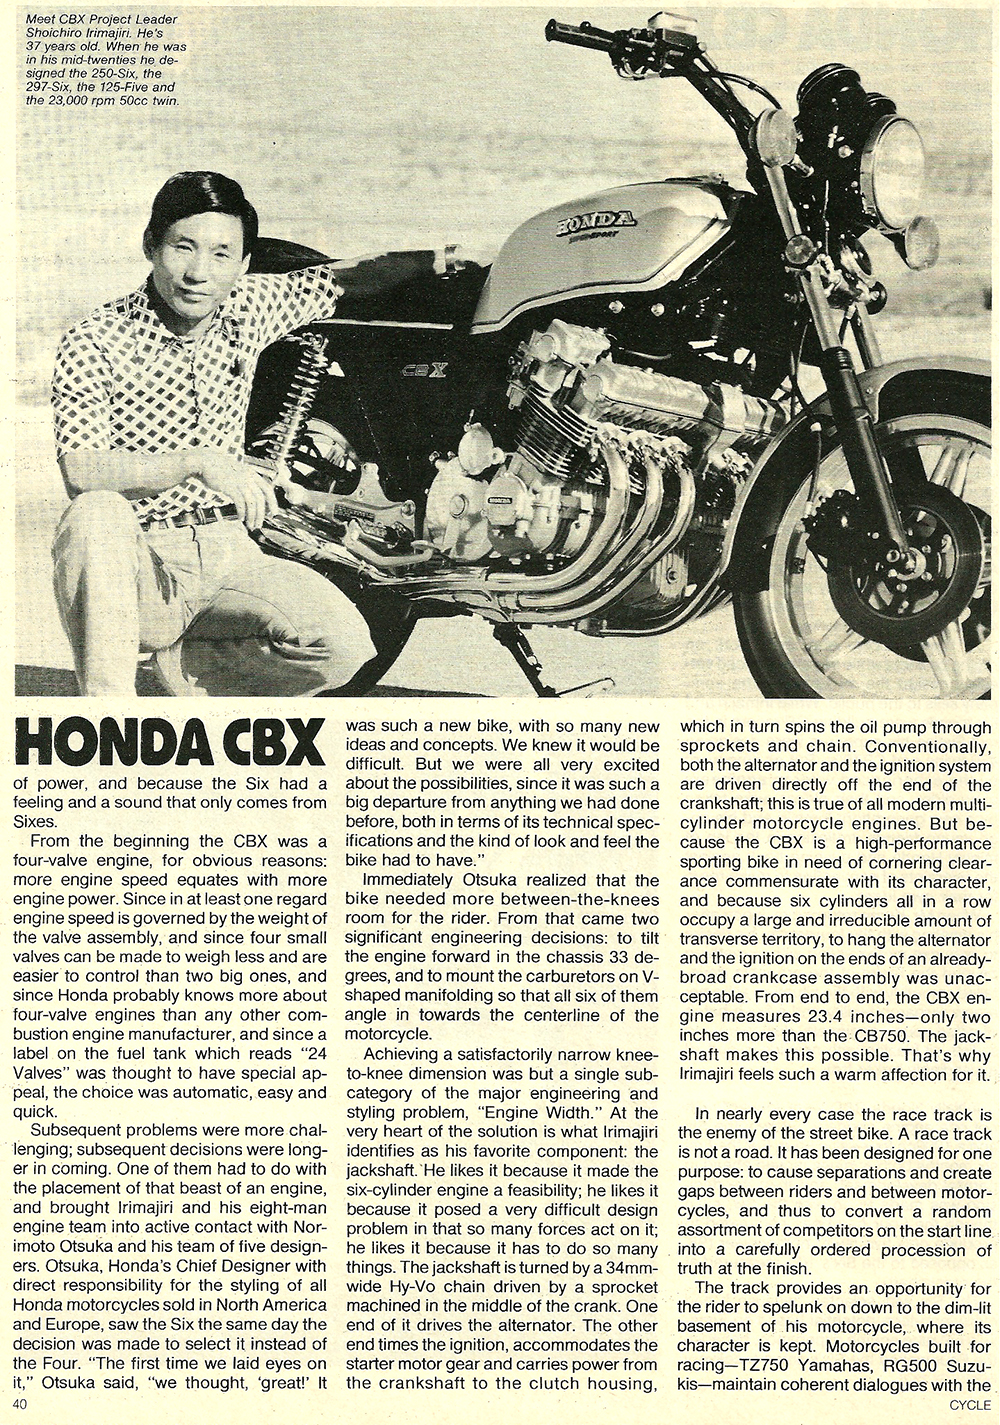 1978 Honda CBX Super Sport road test 07.jpg